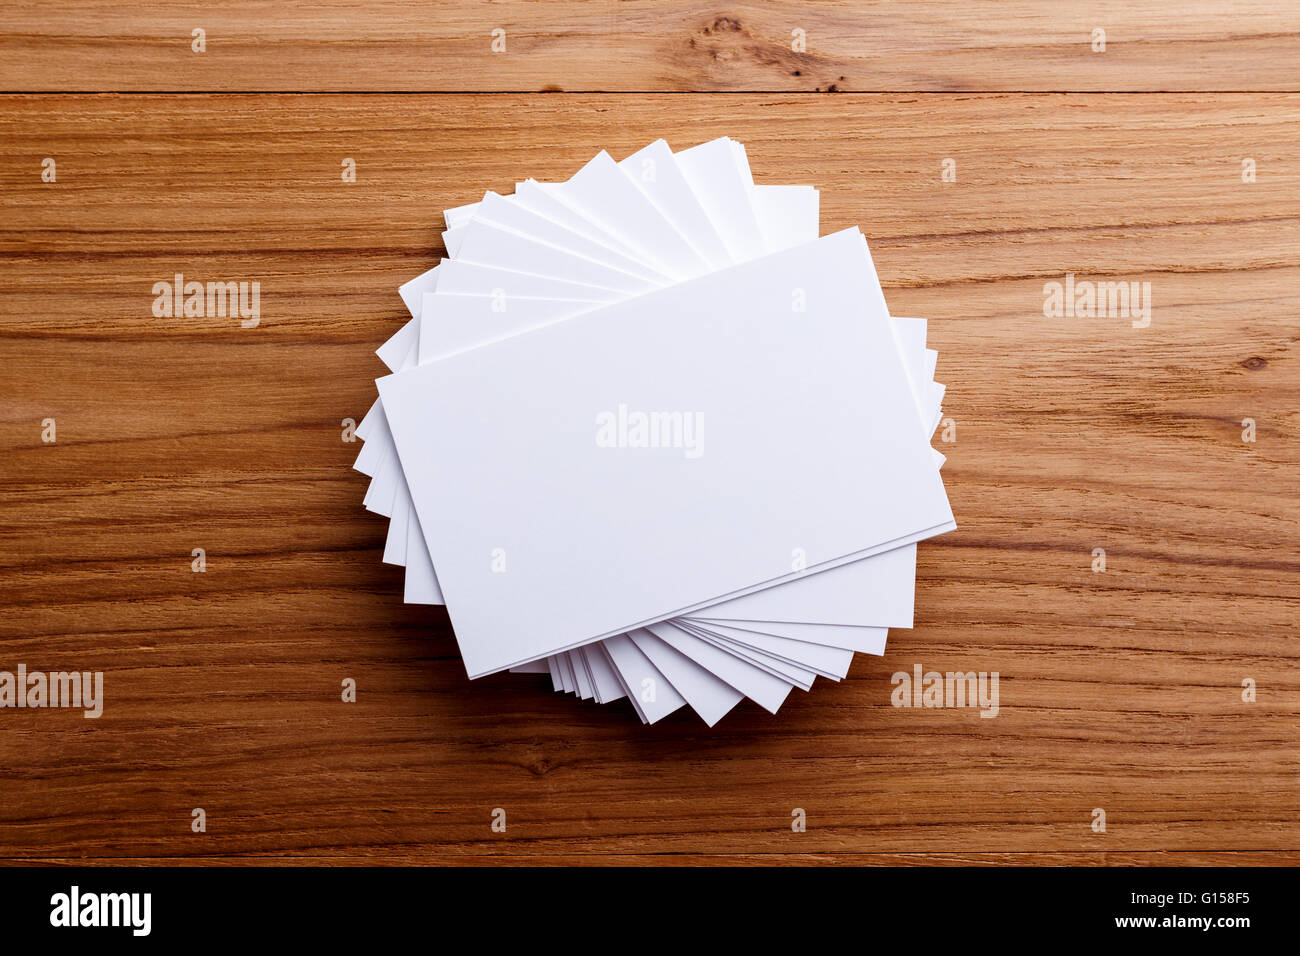 Business card stack blank mockup on wood desk stock photo 103993321 business card stack blank mockup on wood desk reheart